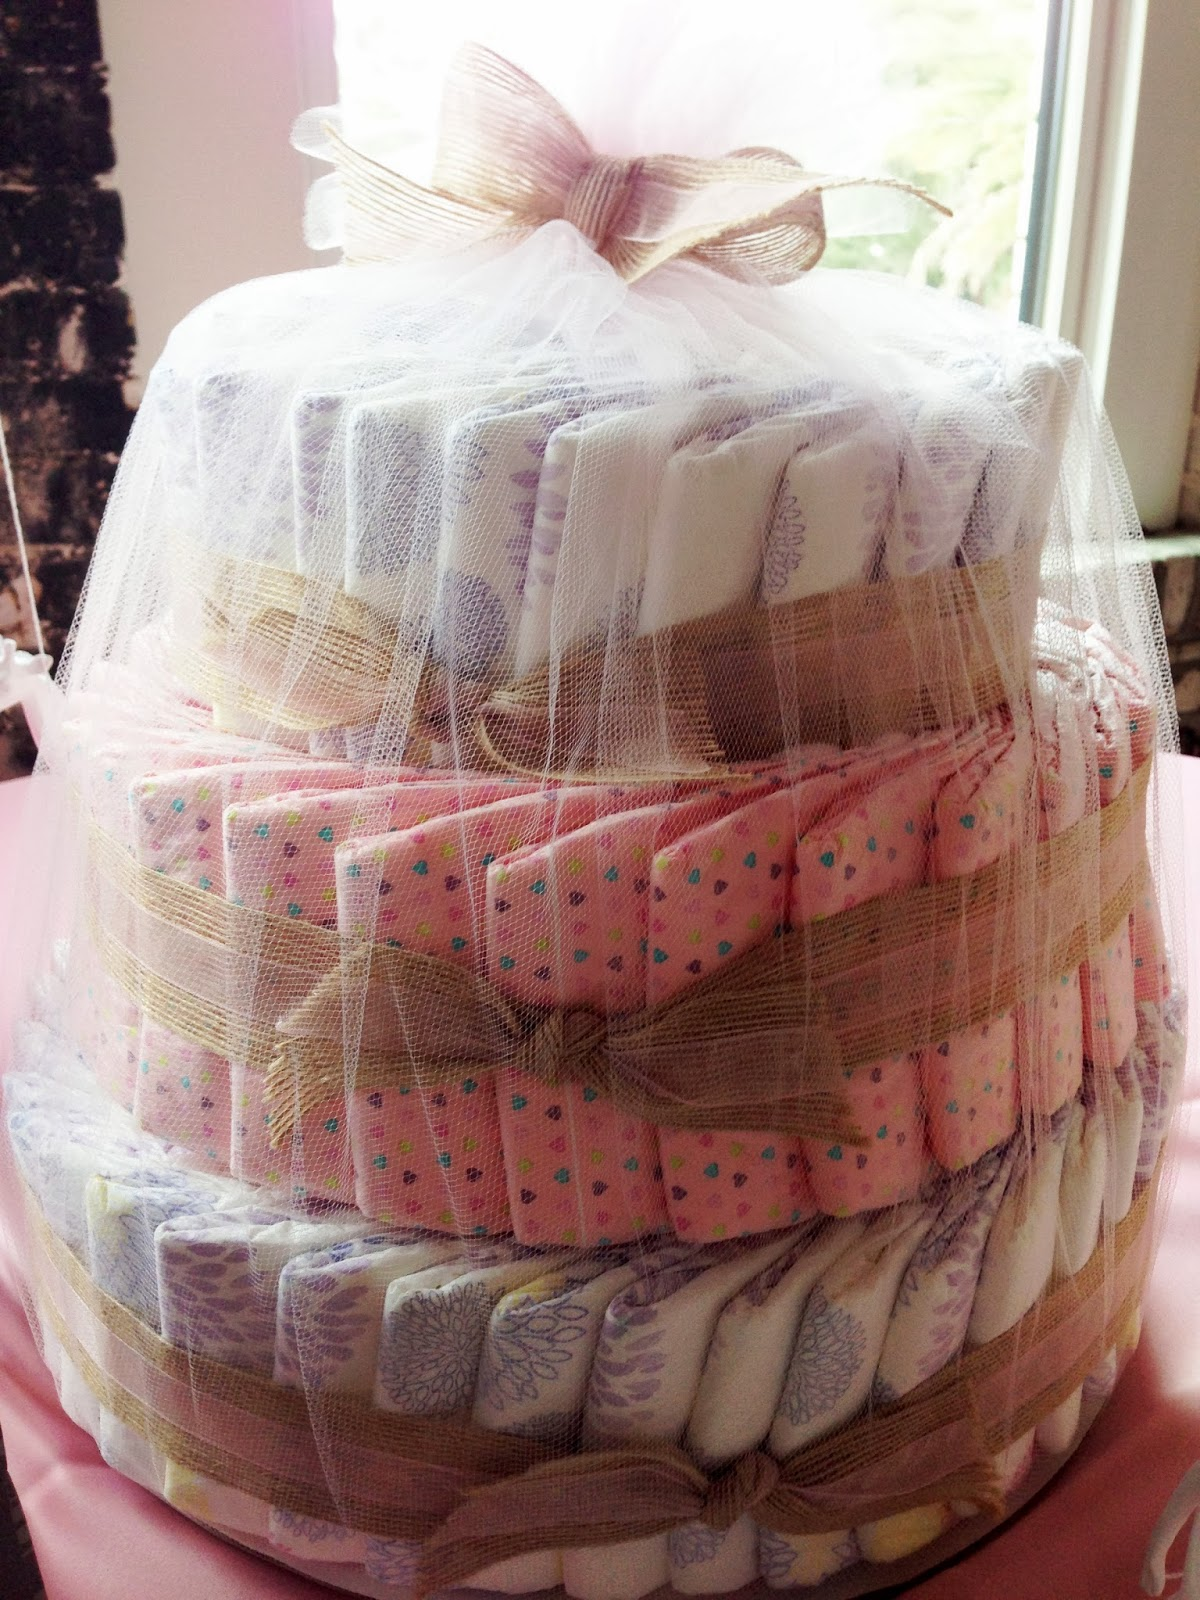 Is Complete Without A Diaper Cake From The Honest Company SO Cute